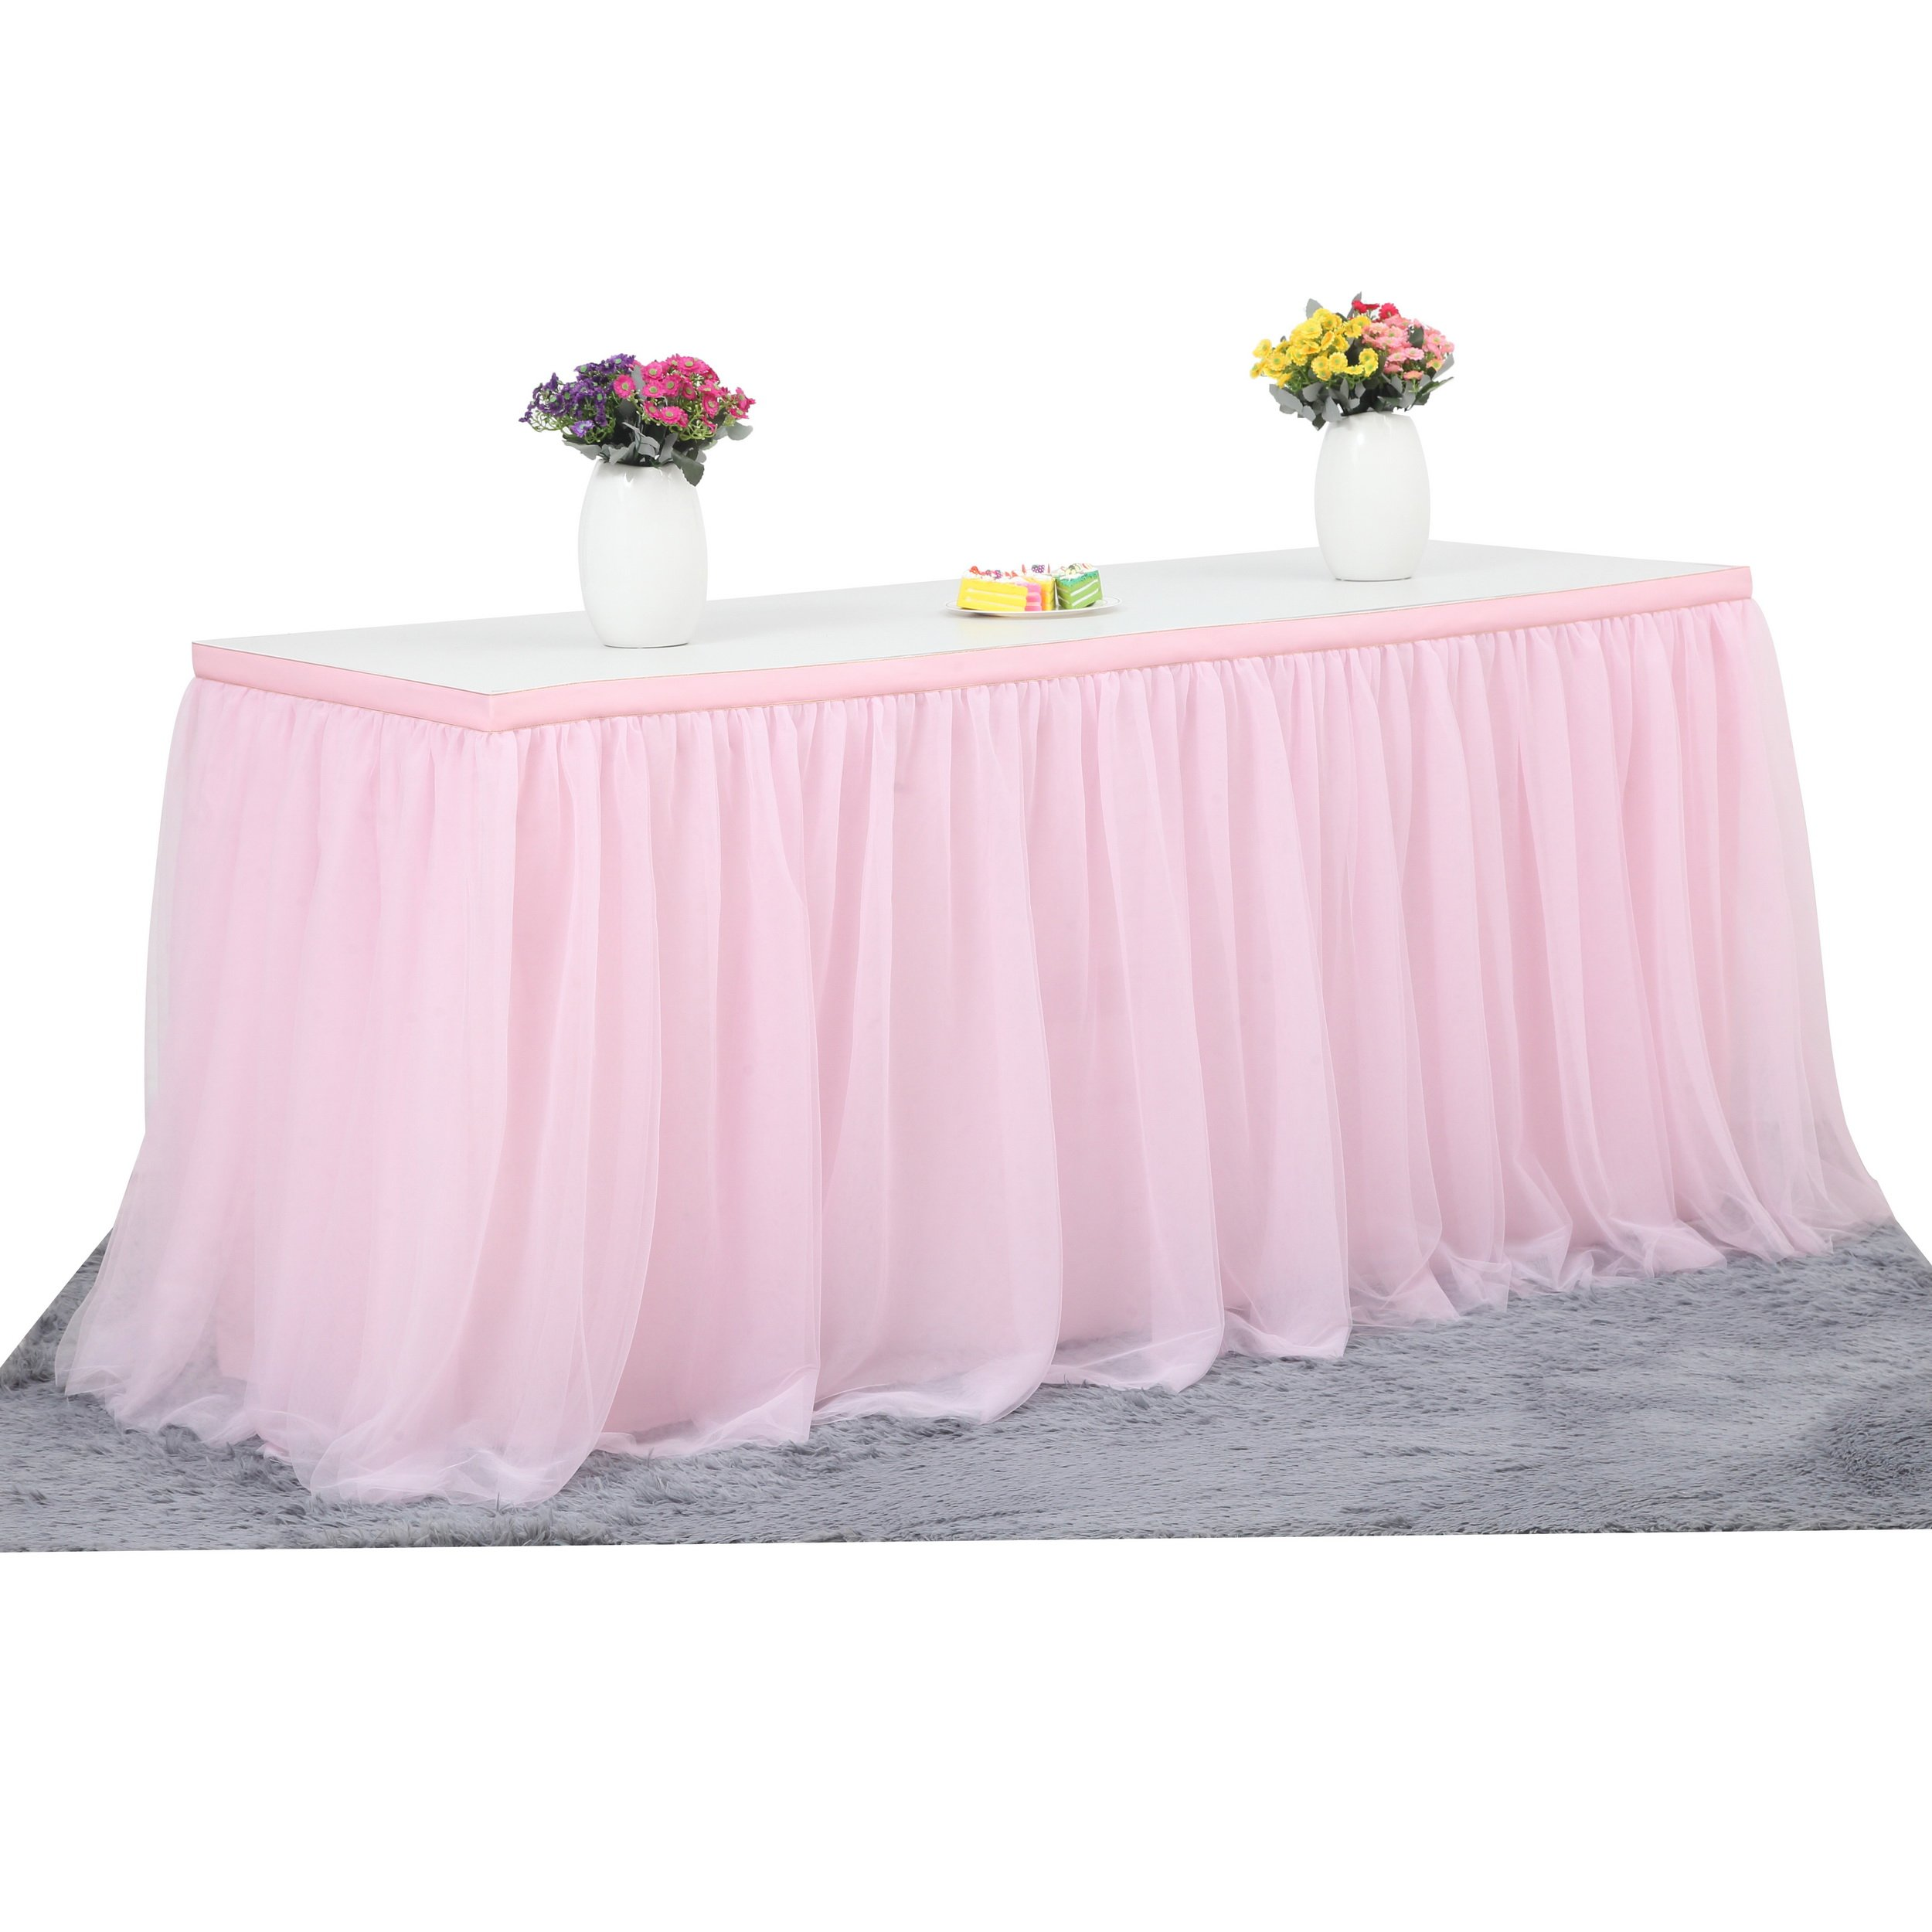 Suppromo 3 Yards High-end Gold Brim 3 Layer Mesh Fluffy Tutu Table Skirt Tulle Tableware Table Cloth For Party,Wedding,Birthday Party&Home Decoration,Table Skirting (L9(ft) H 30in, Pink) by Suppromo (Image #1)